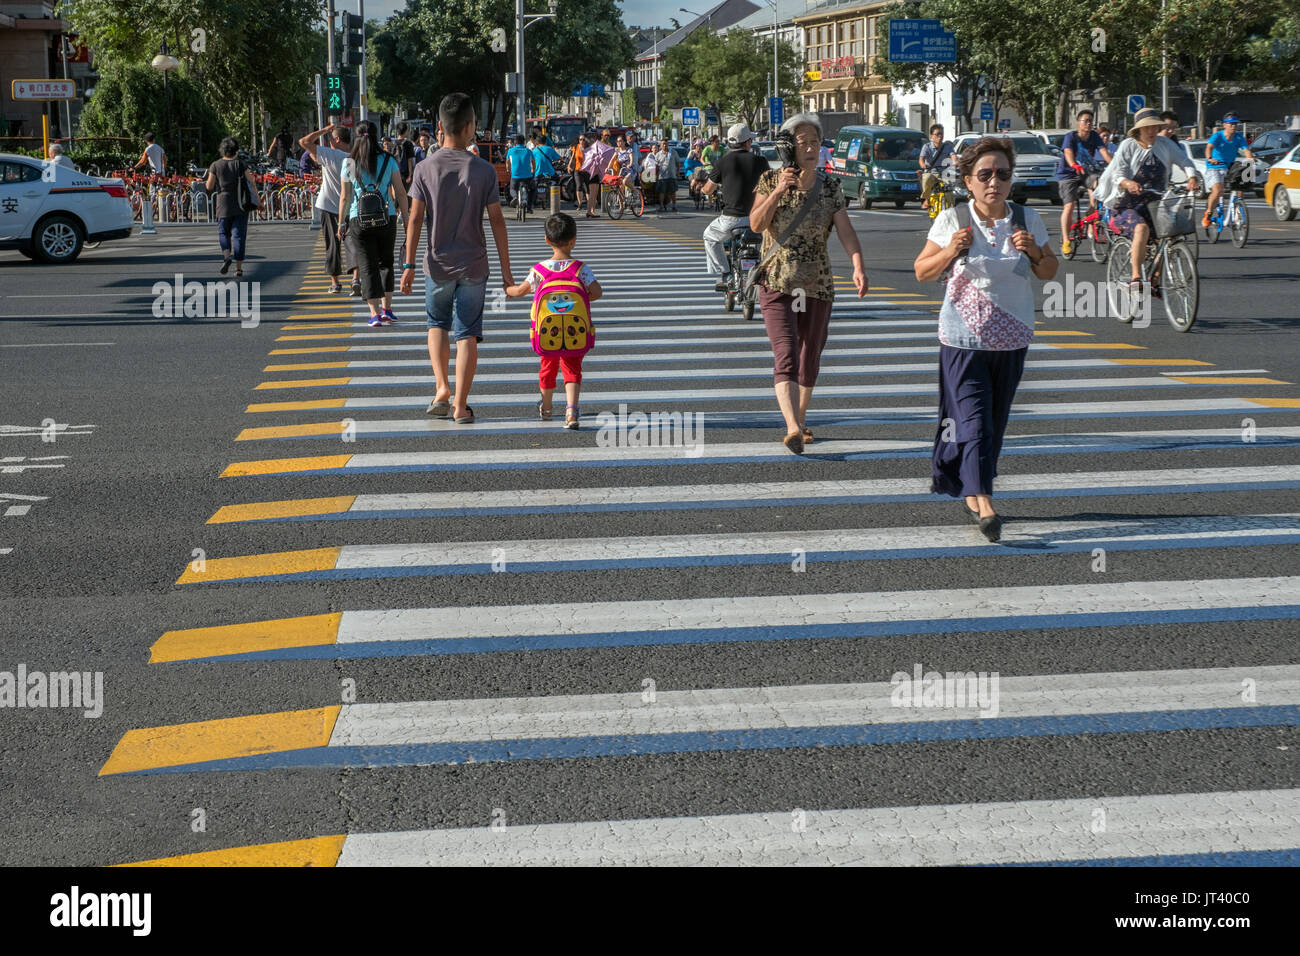 Pedestrians across 3D zebra crossing in central Beijing, China. 07-Aug-2017 - Stock Image